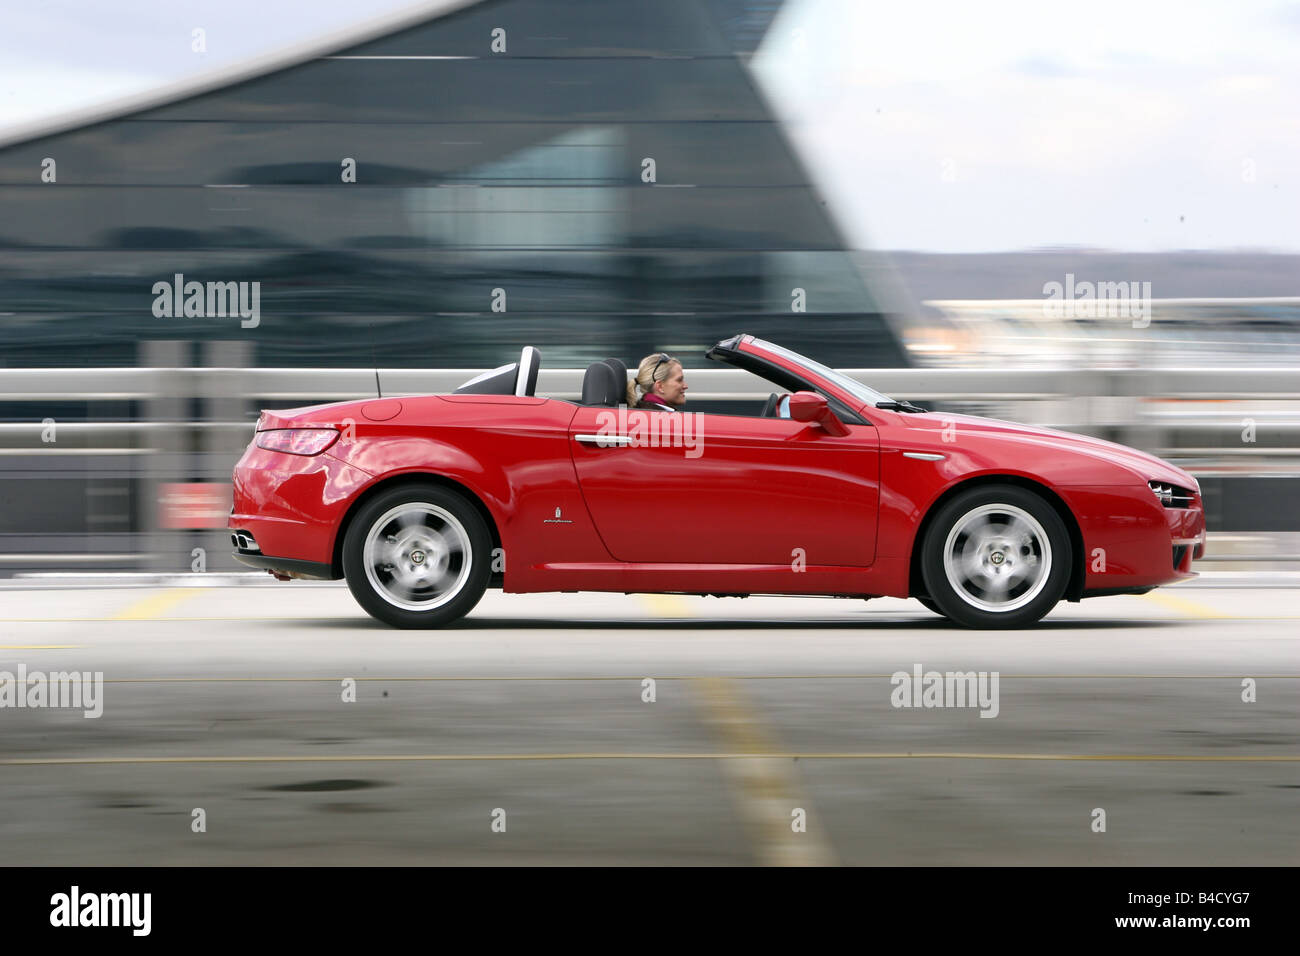 Alfa Romeo Spider 2.2 JTS Exclusive, model year 2007-, red, driving, side view, open top - Stock Image